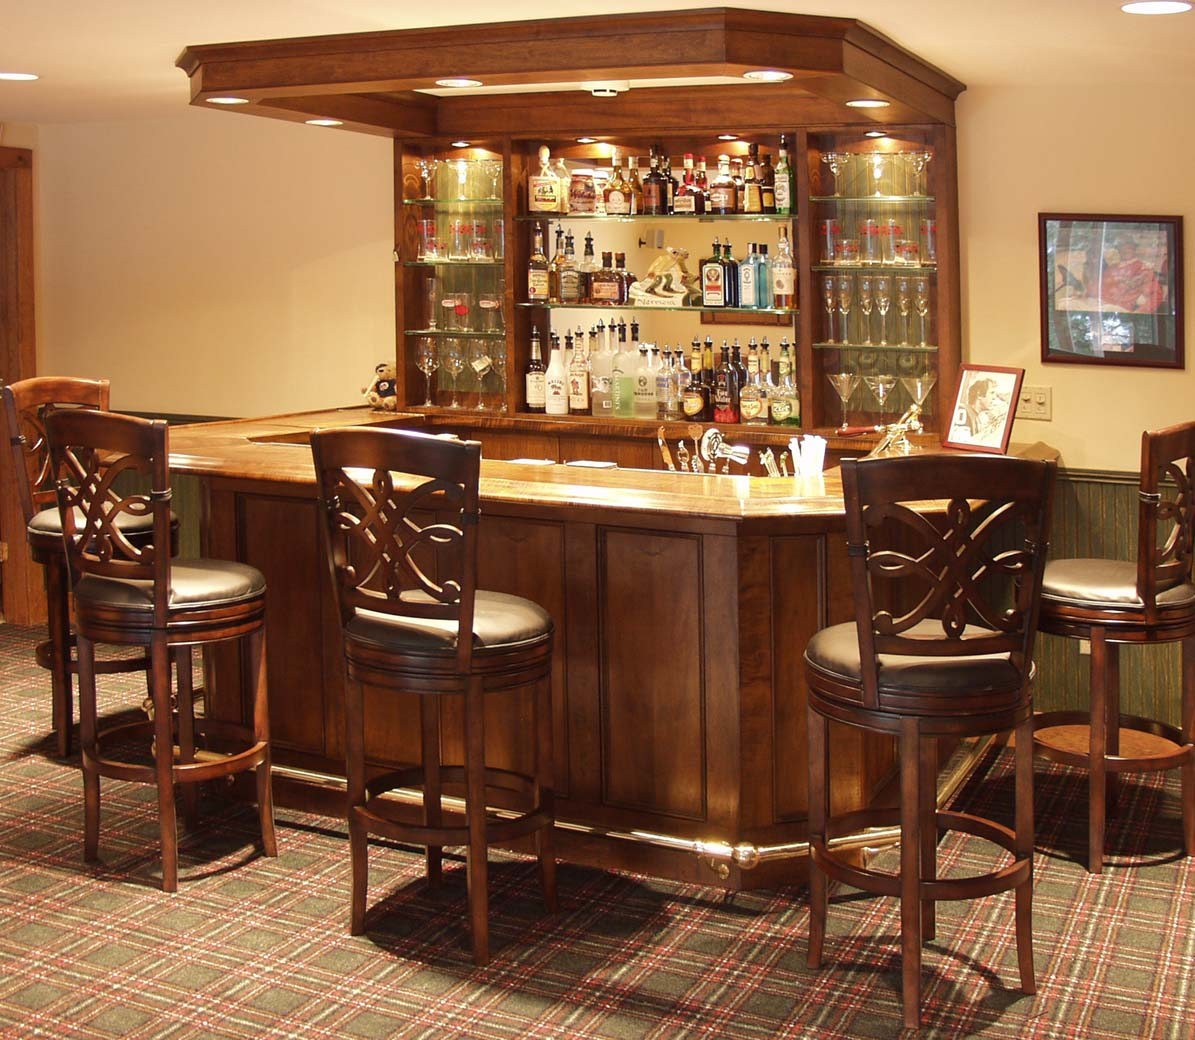 Dorset custom furniture a woodworkers photo journal the spaces we make Home pub bar furniture